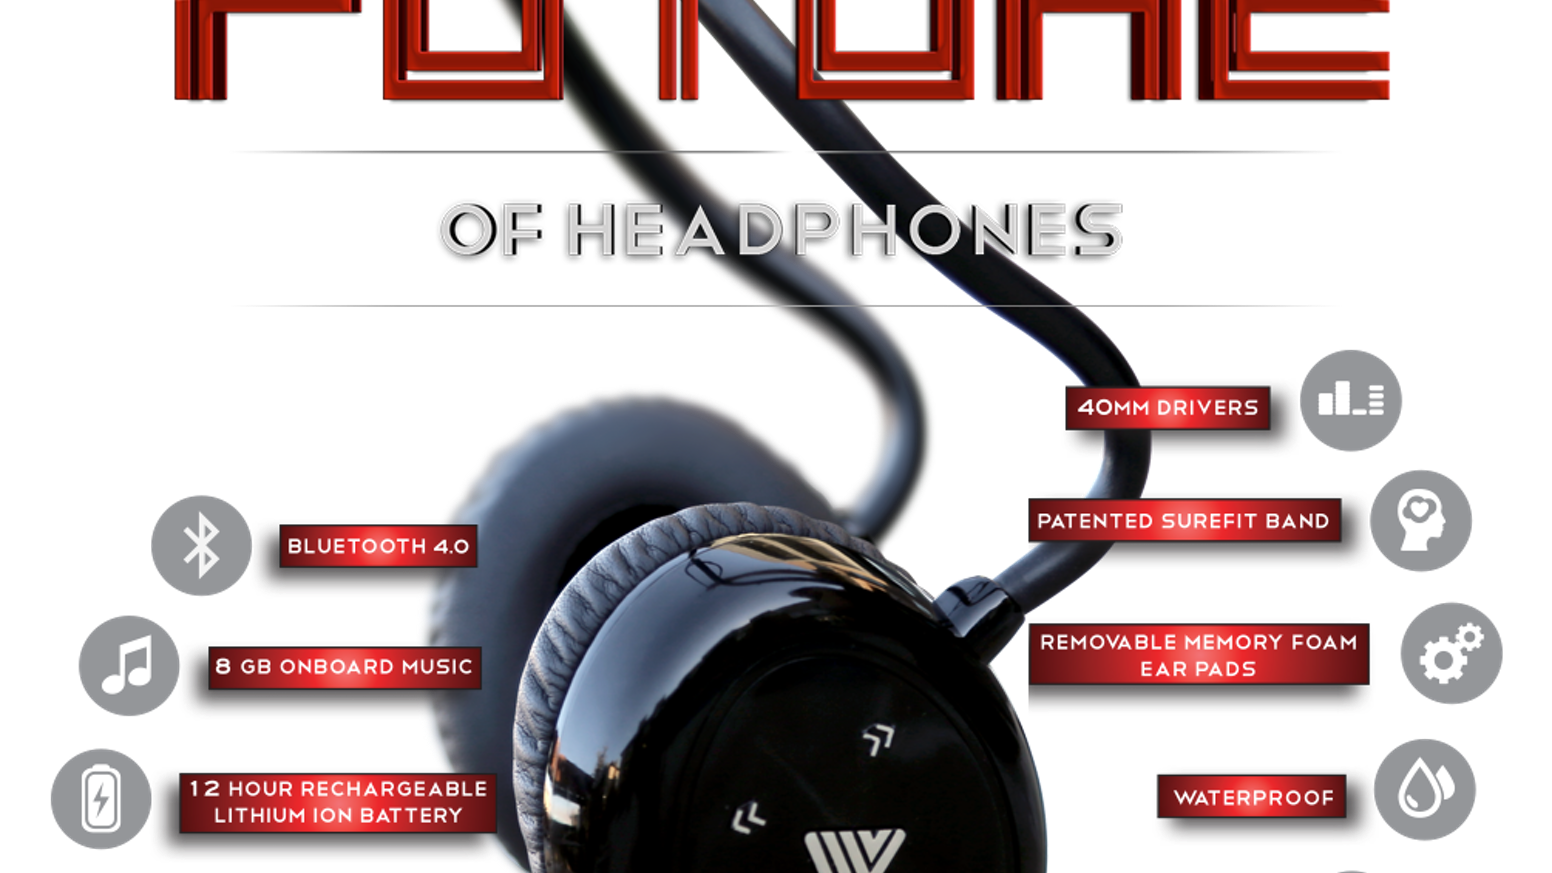 LIVV Headphones by Mark Clayton »